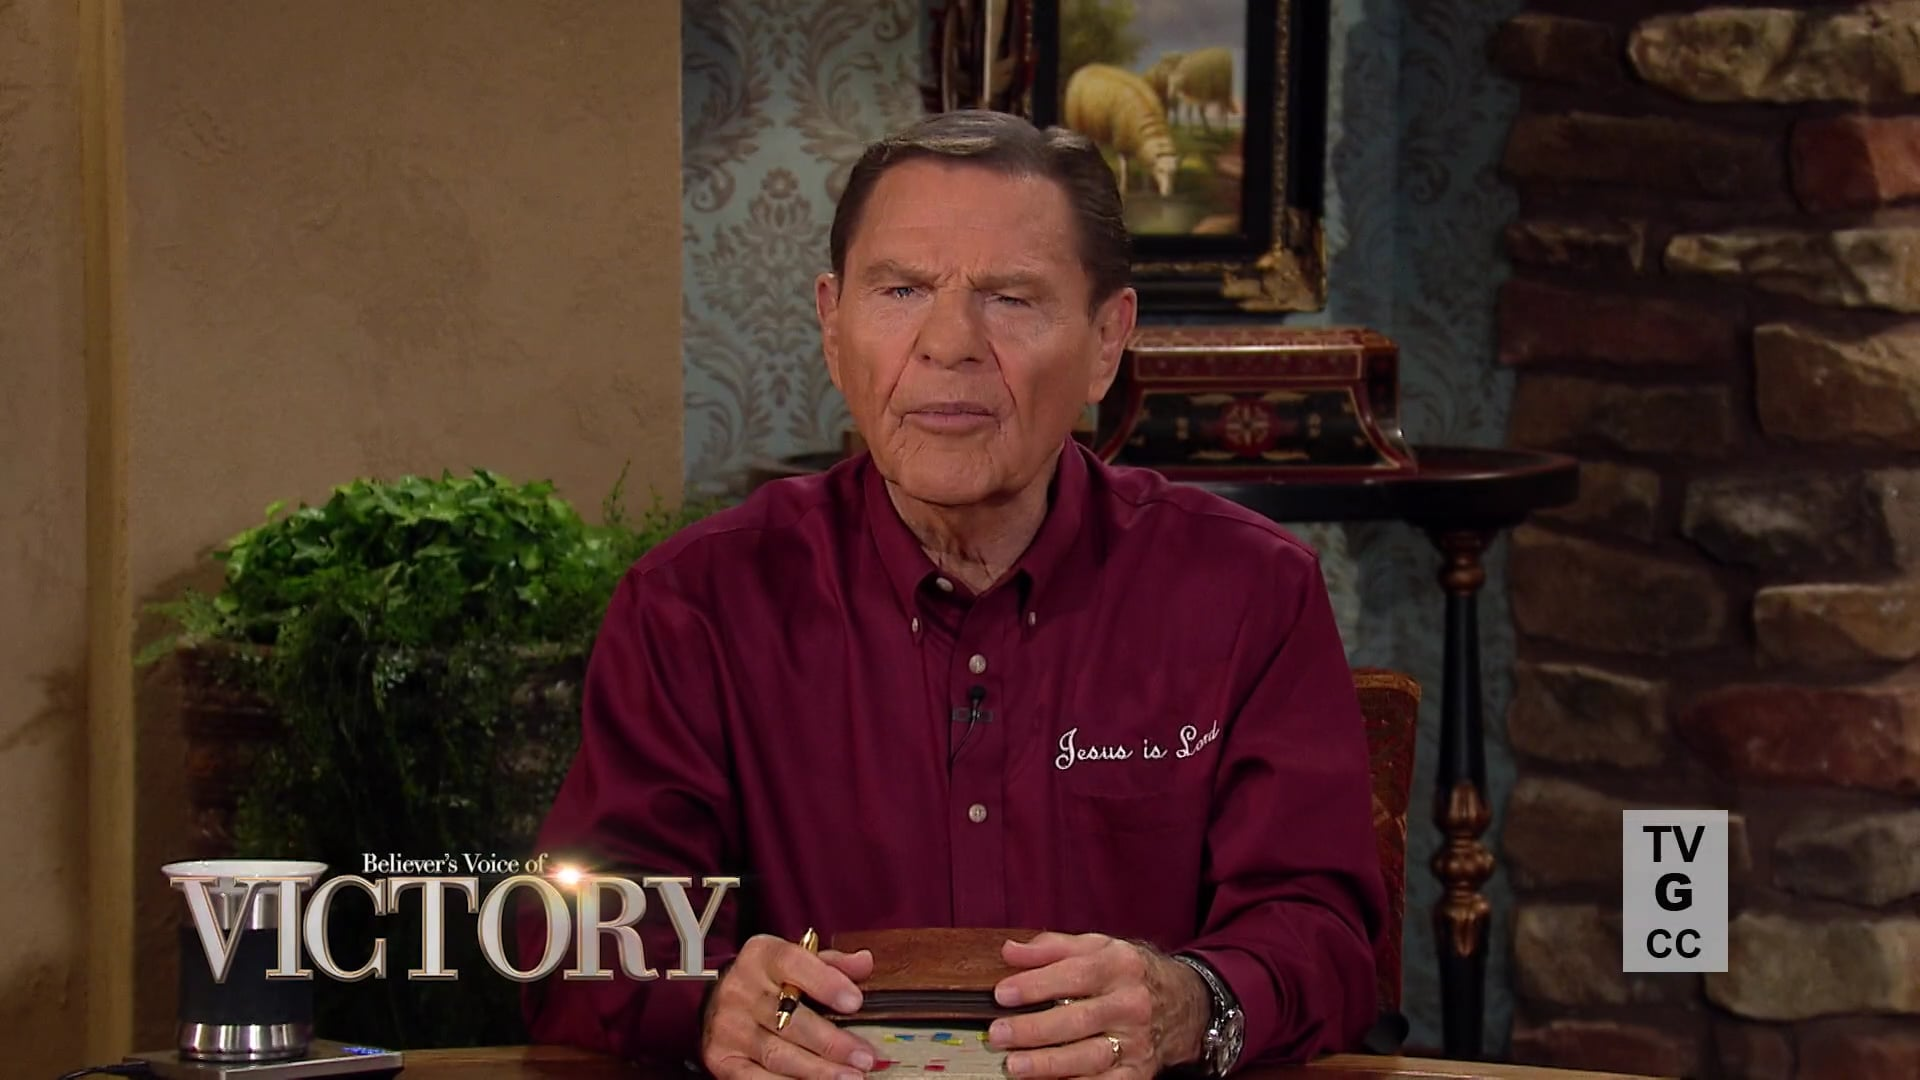 We're diving deep into biblical symbolism today! Watch Believer's Voice of Victory as Kenneth Copeland and Professor Greg Stephens compare the role of the priest from the time of Moses to the priestly BLESSING that came from our Most High Priest—Jesus. Learn why it is the priest's responsibility to BLESS and how we are recipients of the highest BLESSING of all!